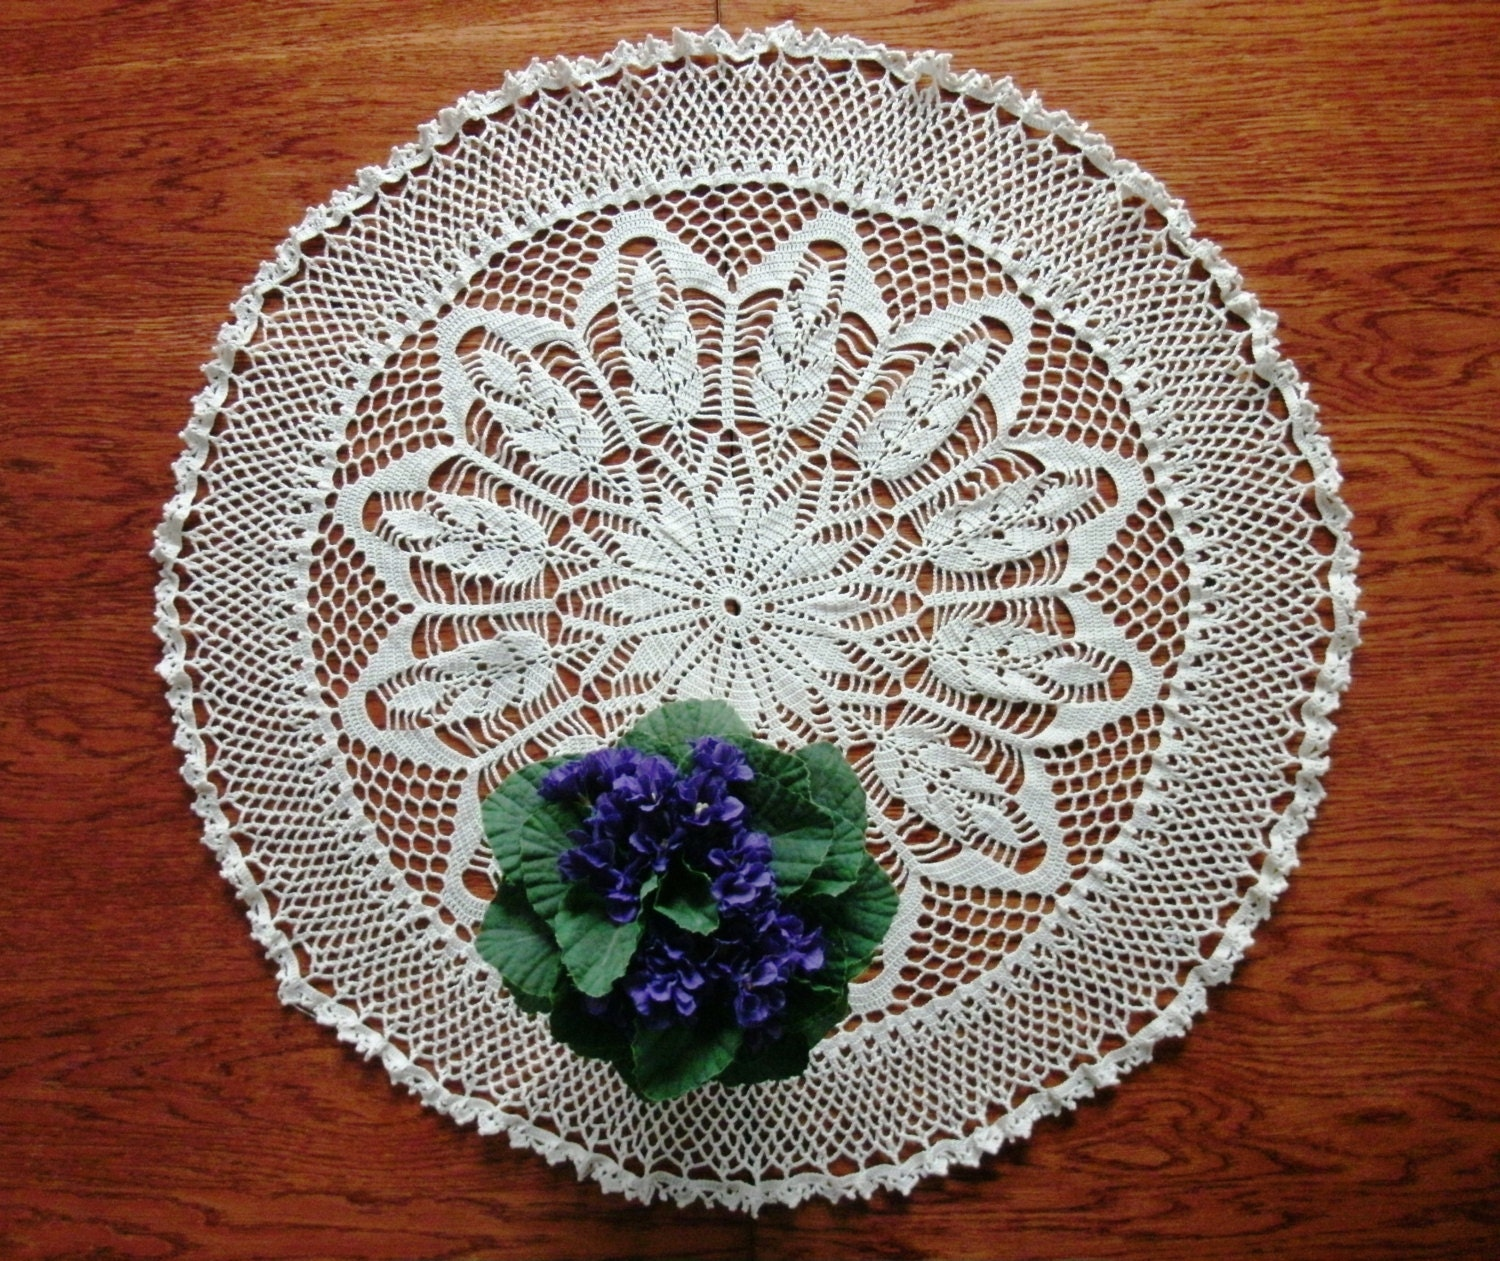 Free Crochet Patterns Round Table Toppers : SALE Round table topper 26 inches Centrepiece Lace crochet